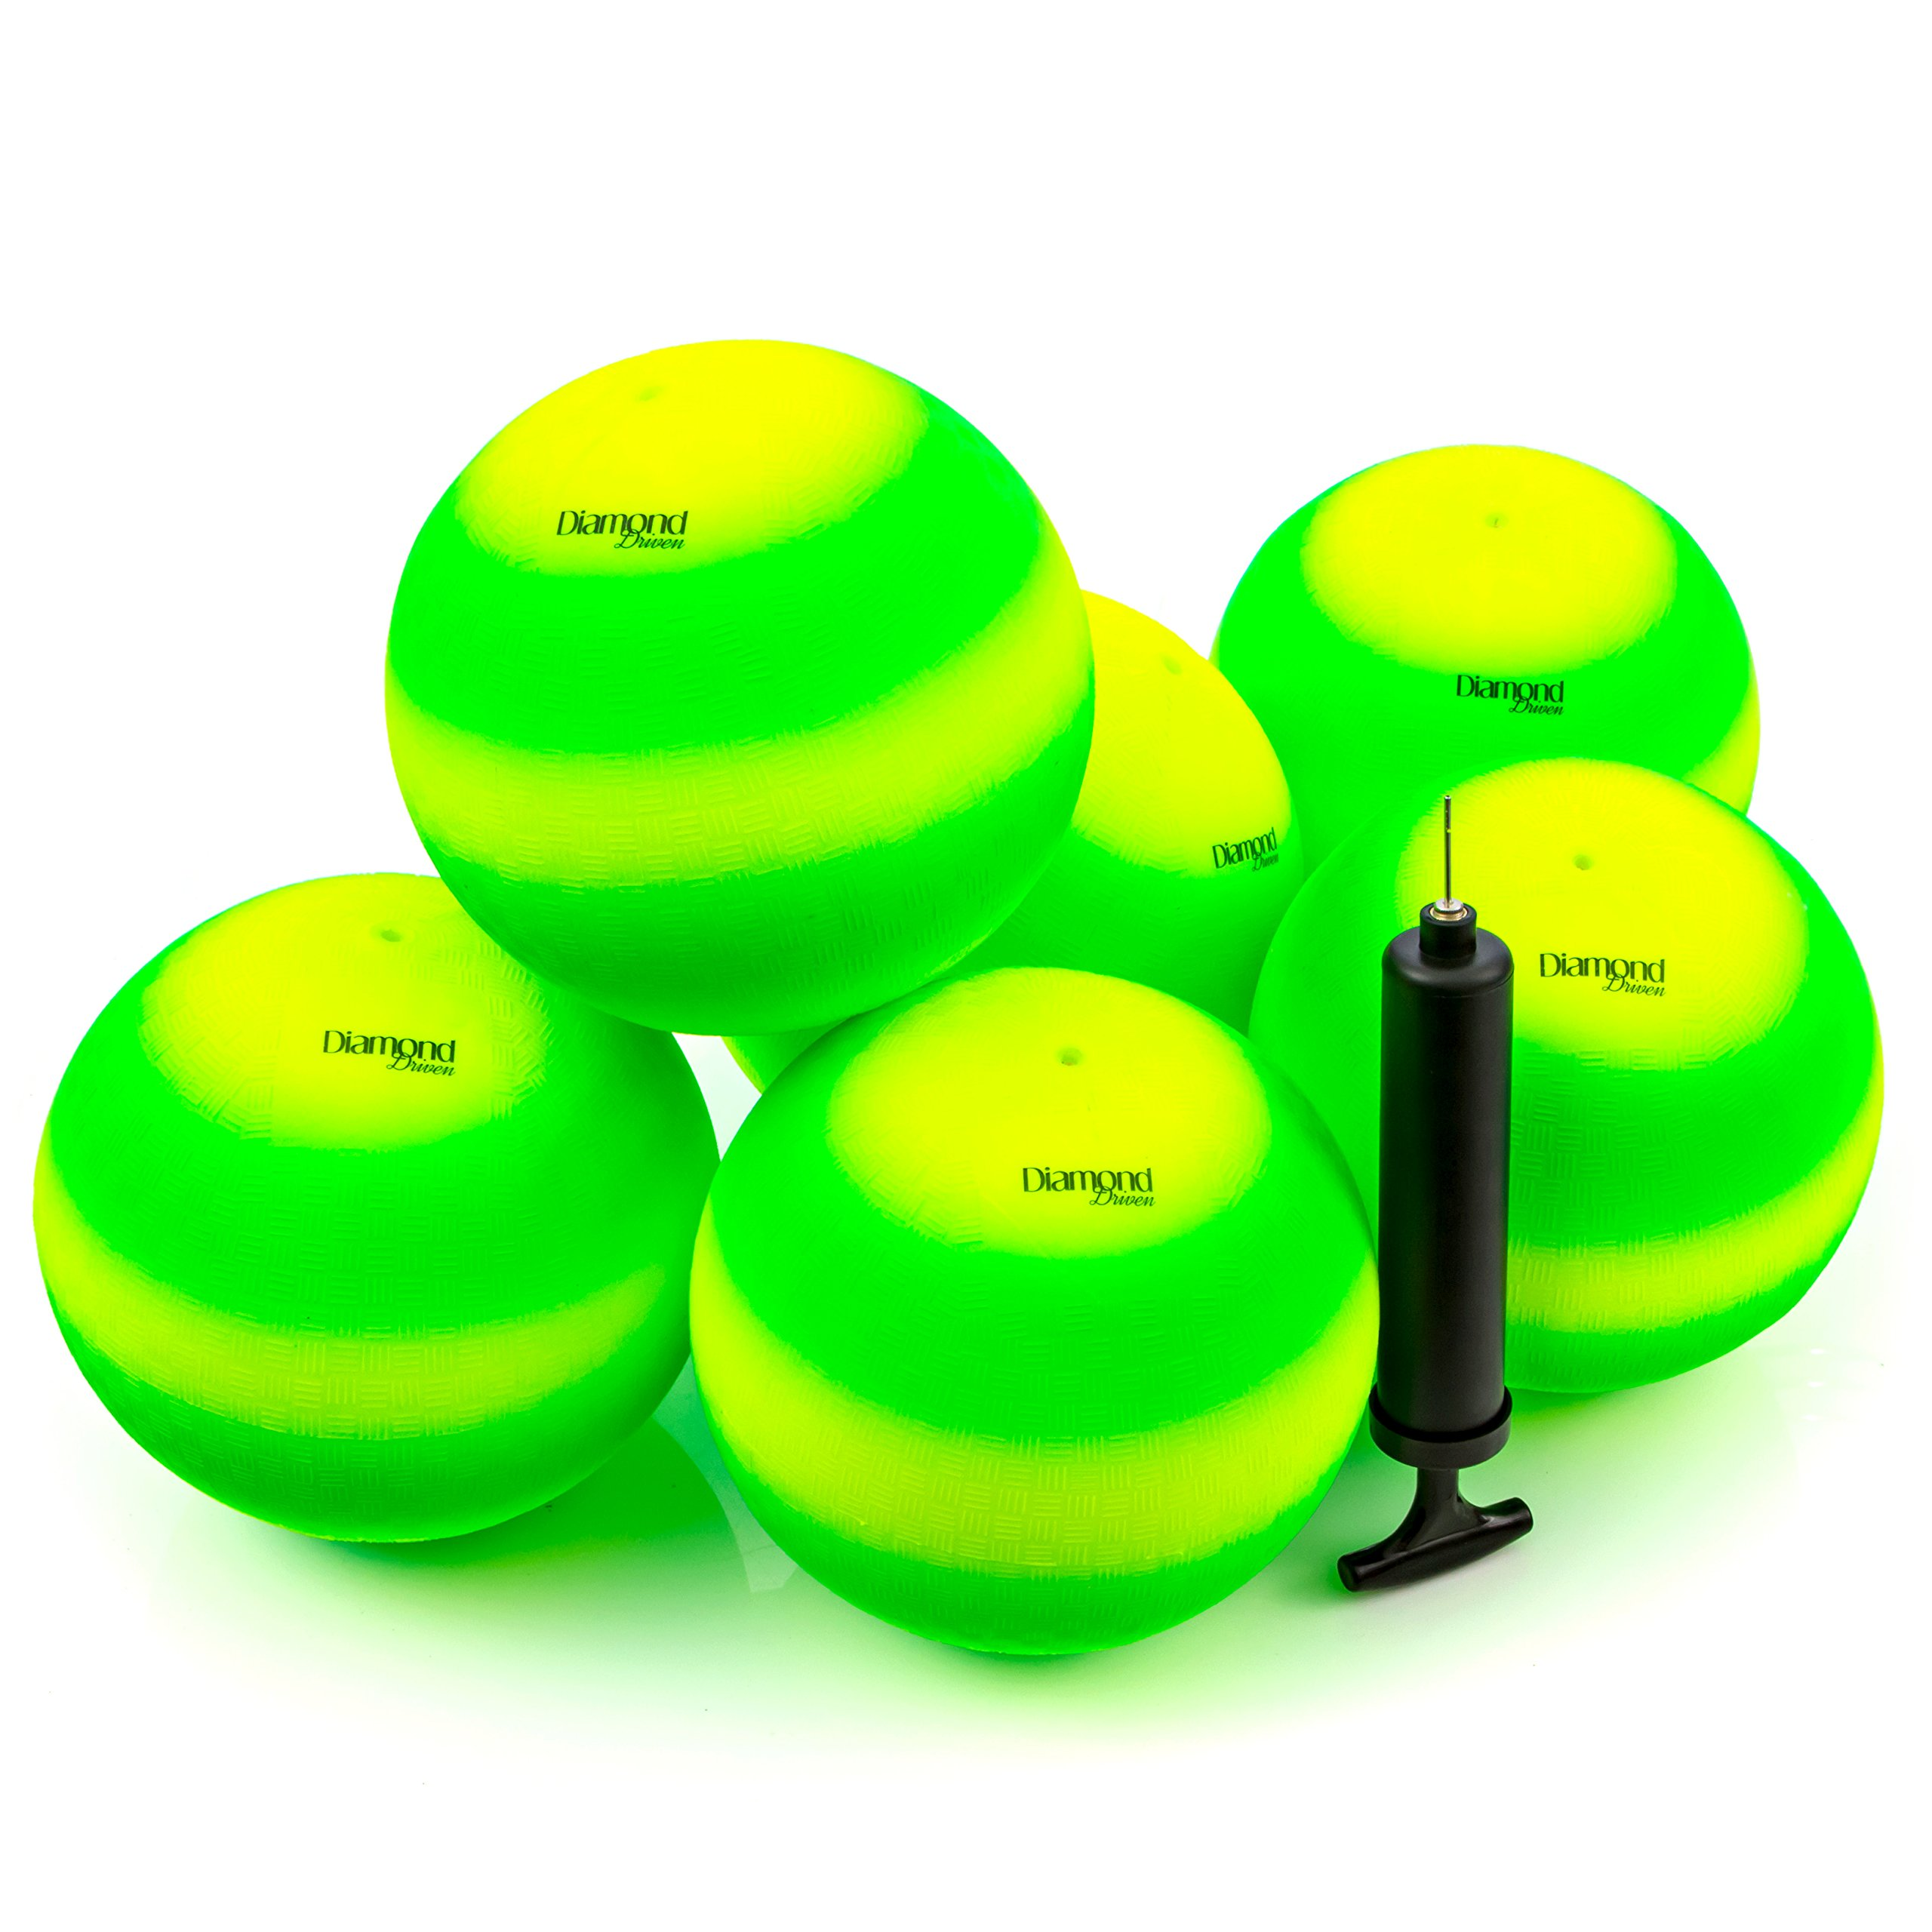 8.5 Inch Playground Balls, Dodge Balls, Kickball's (Set of 6) with 1 Hand Pump, Sports Balls, 250 Grams solid and safe by Diamond Driven